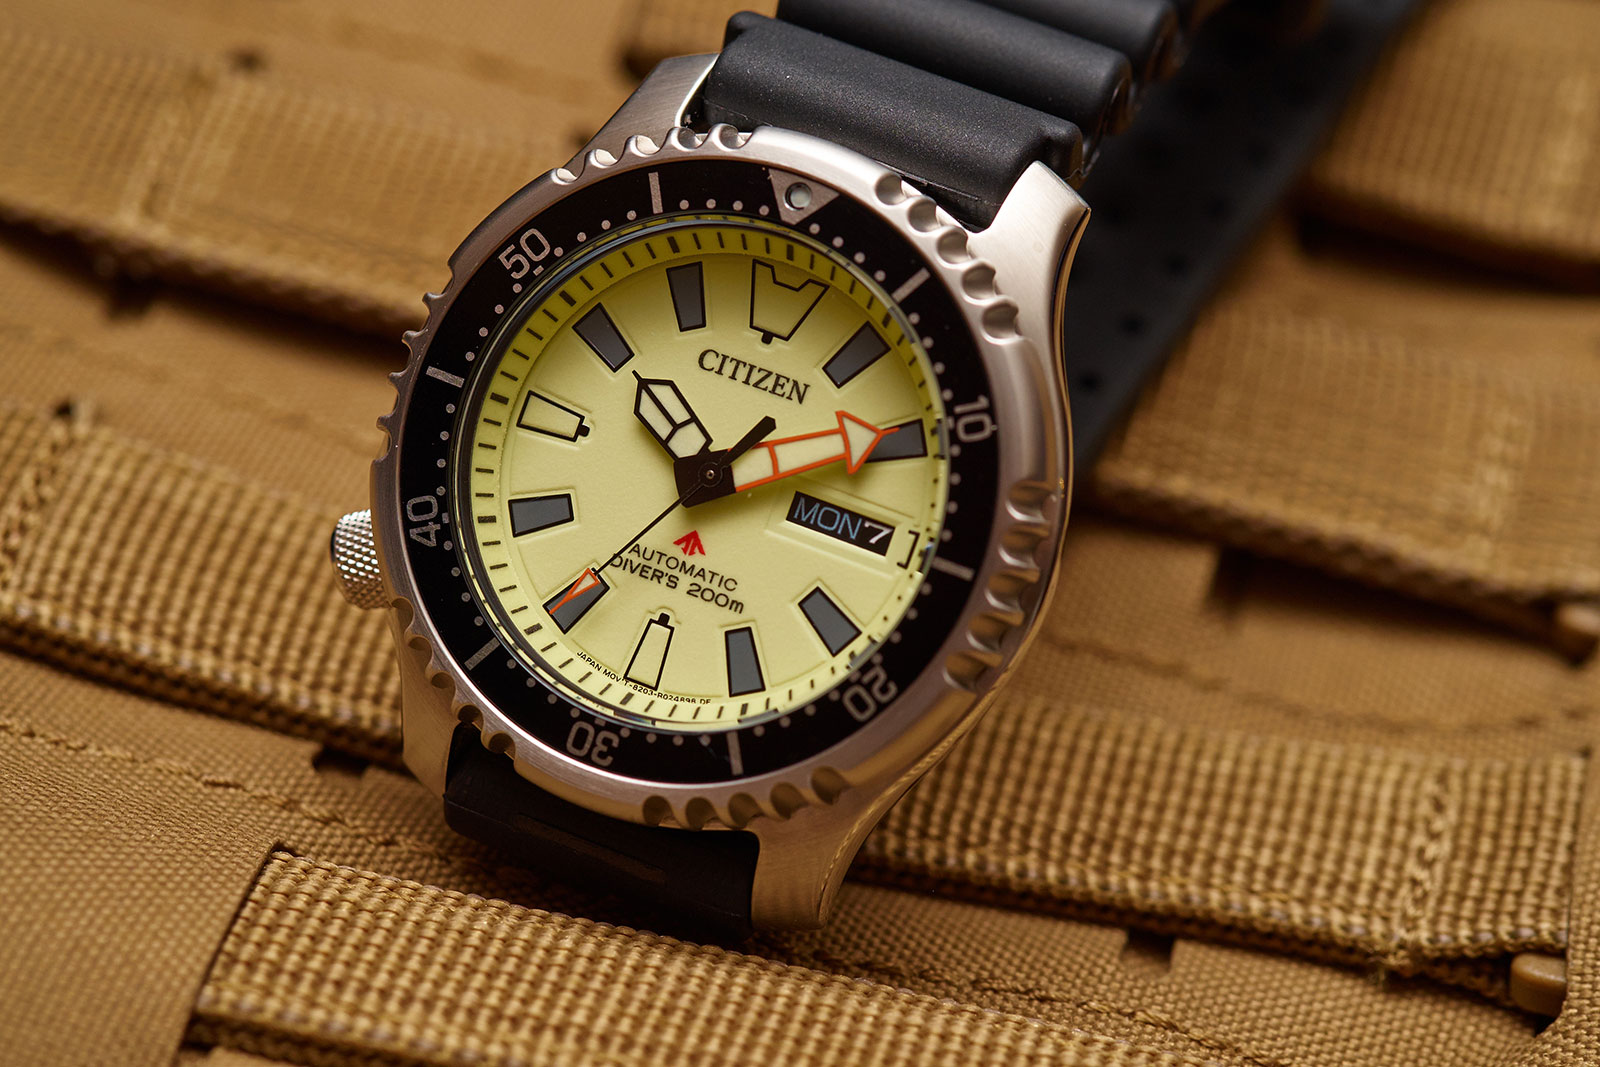 Citizen Promaster Asia edition diver watch